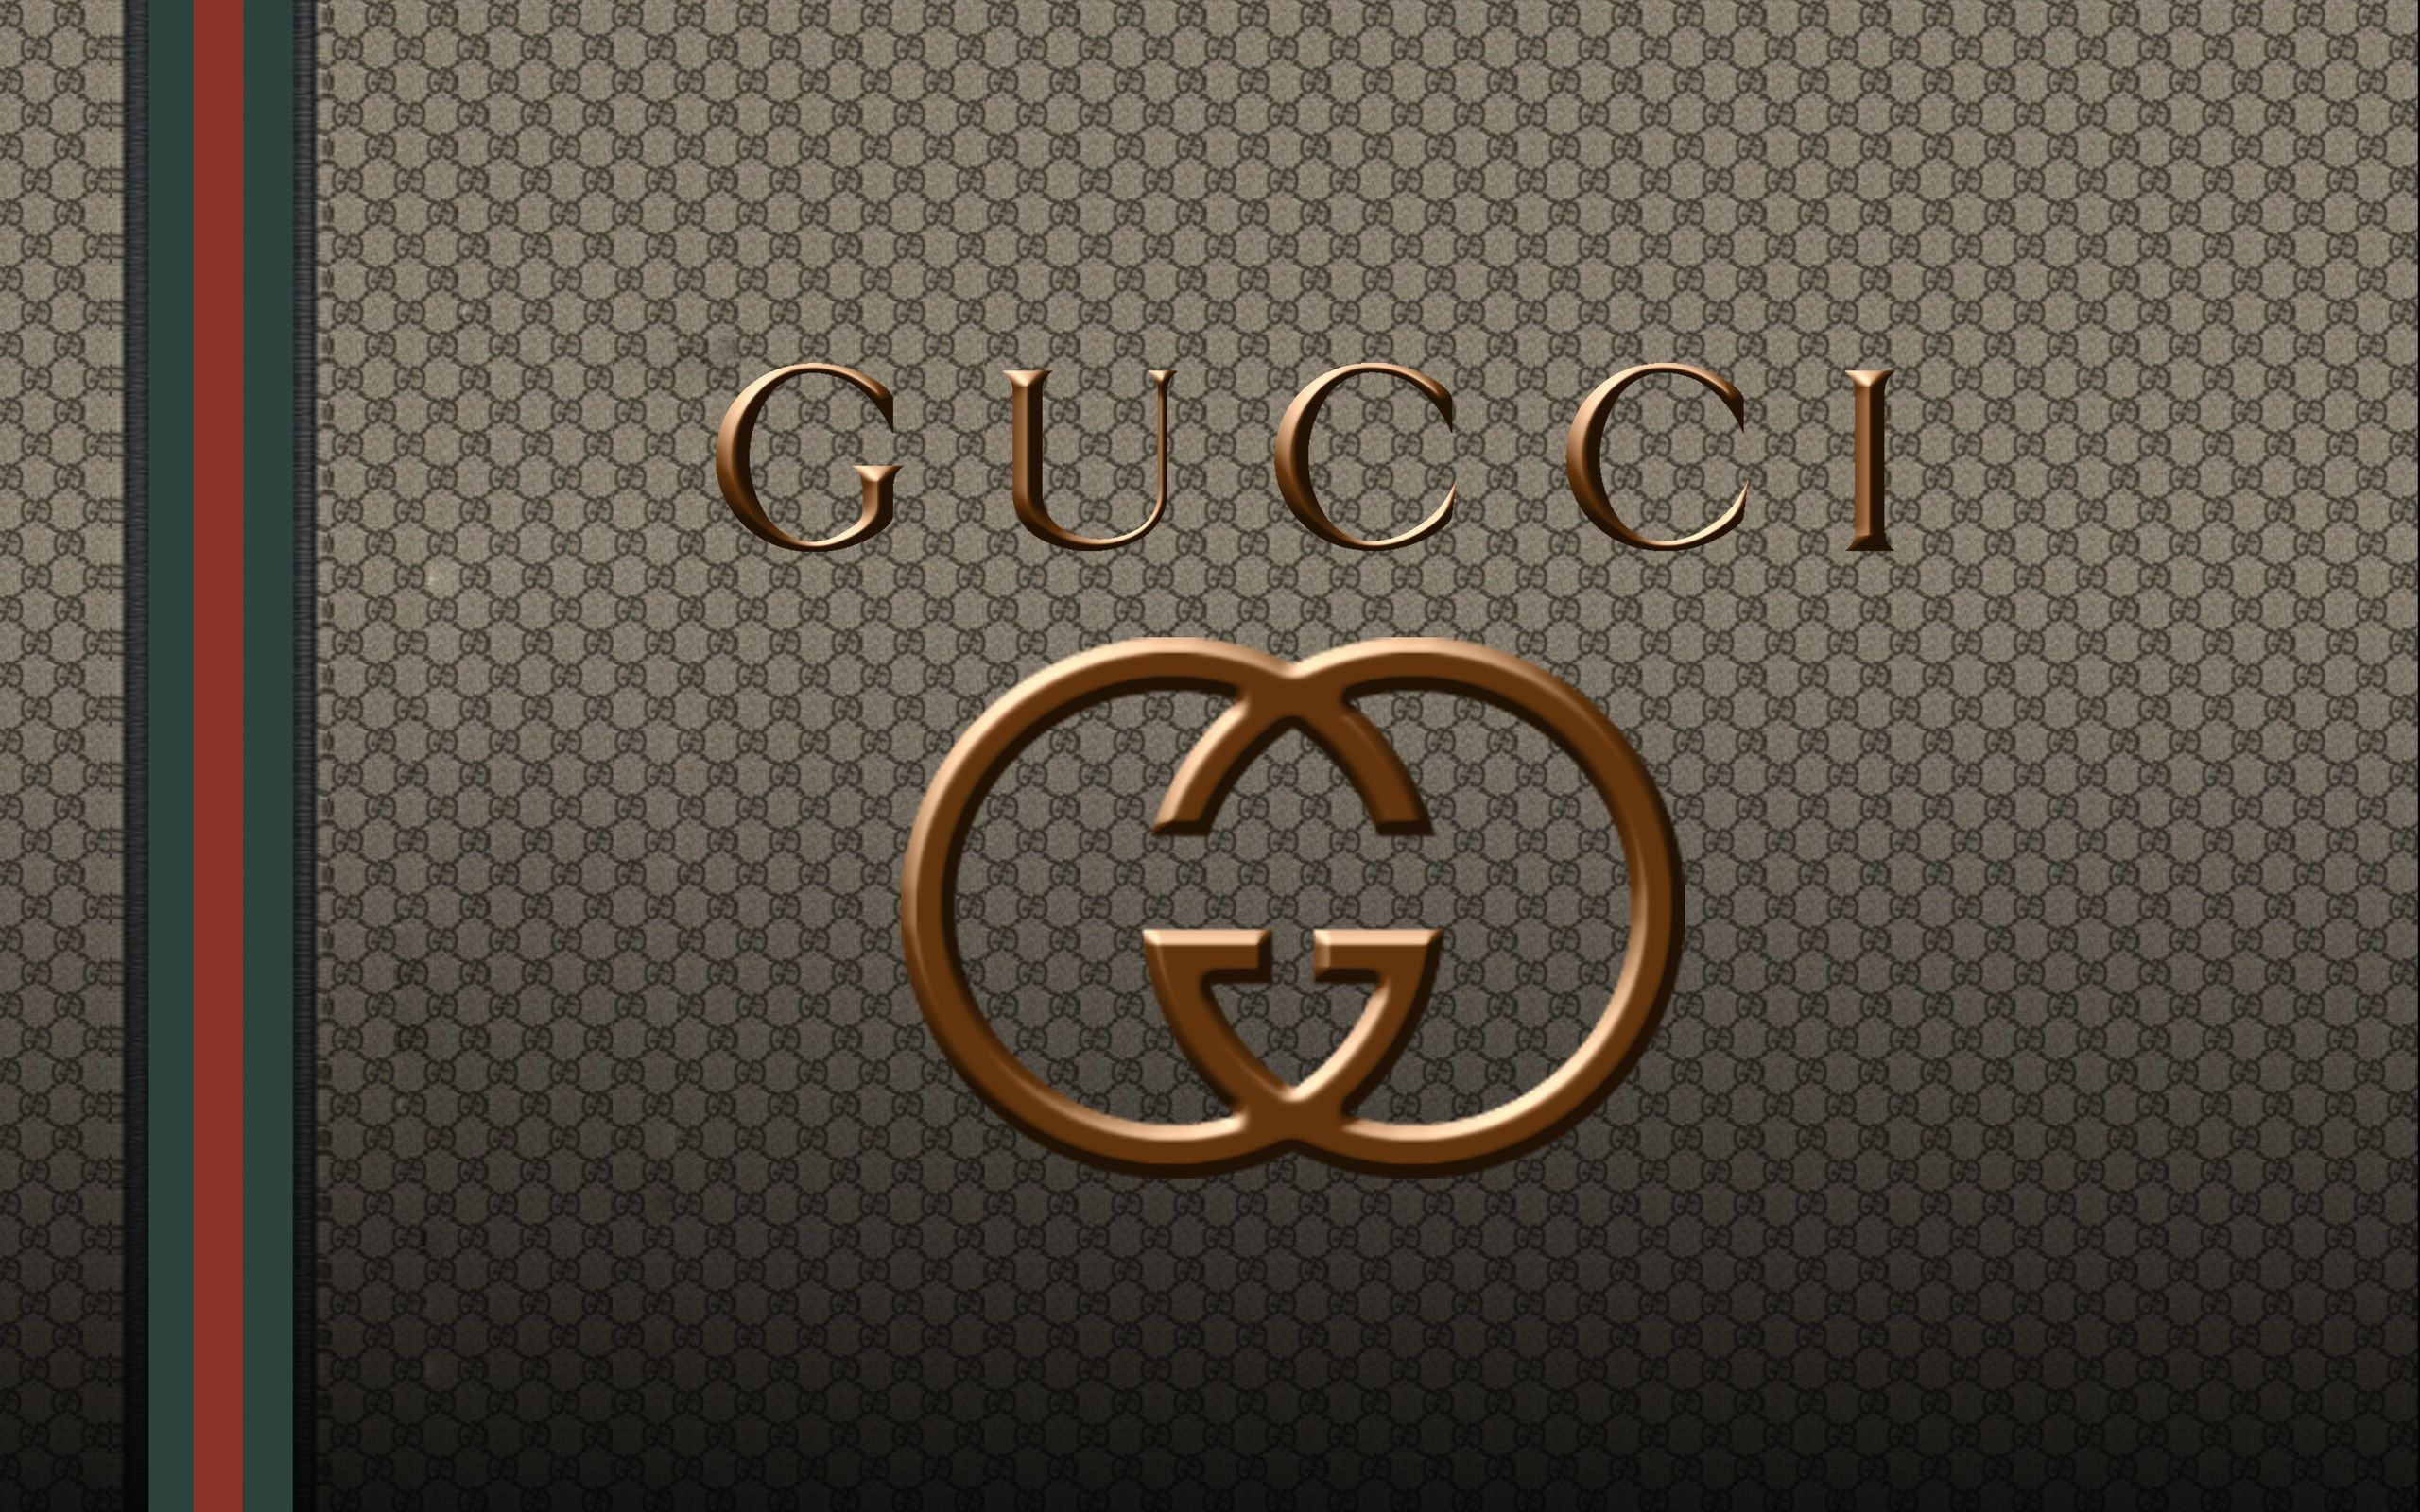 Gucci Logo Wallpapers Hd Pictures Images Logo Wallpaper Hd Adidas Logo Wallpapers Gucci